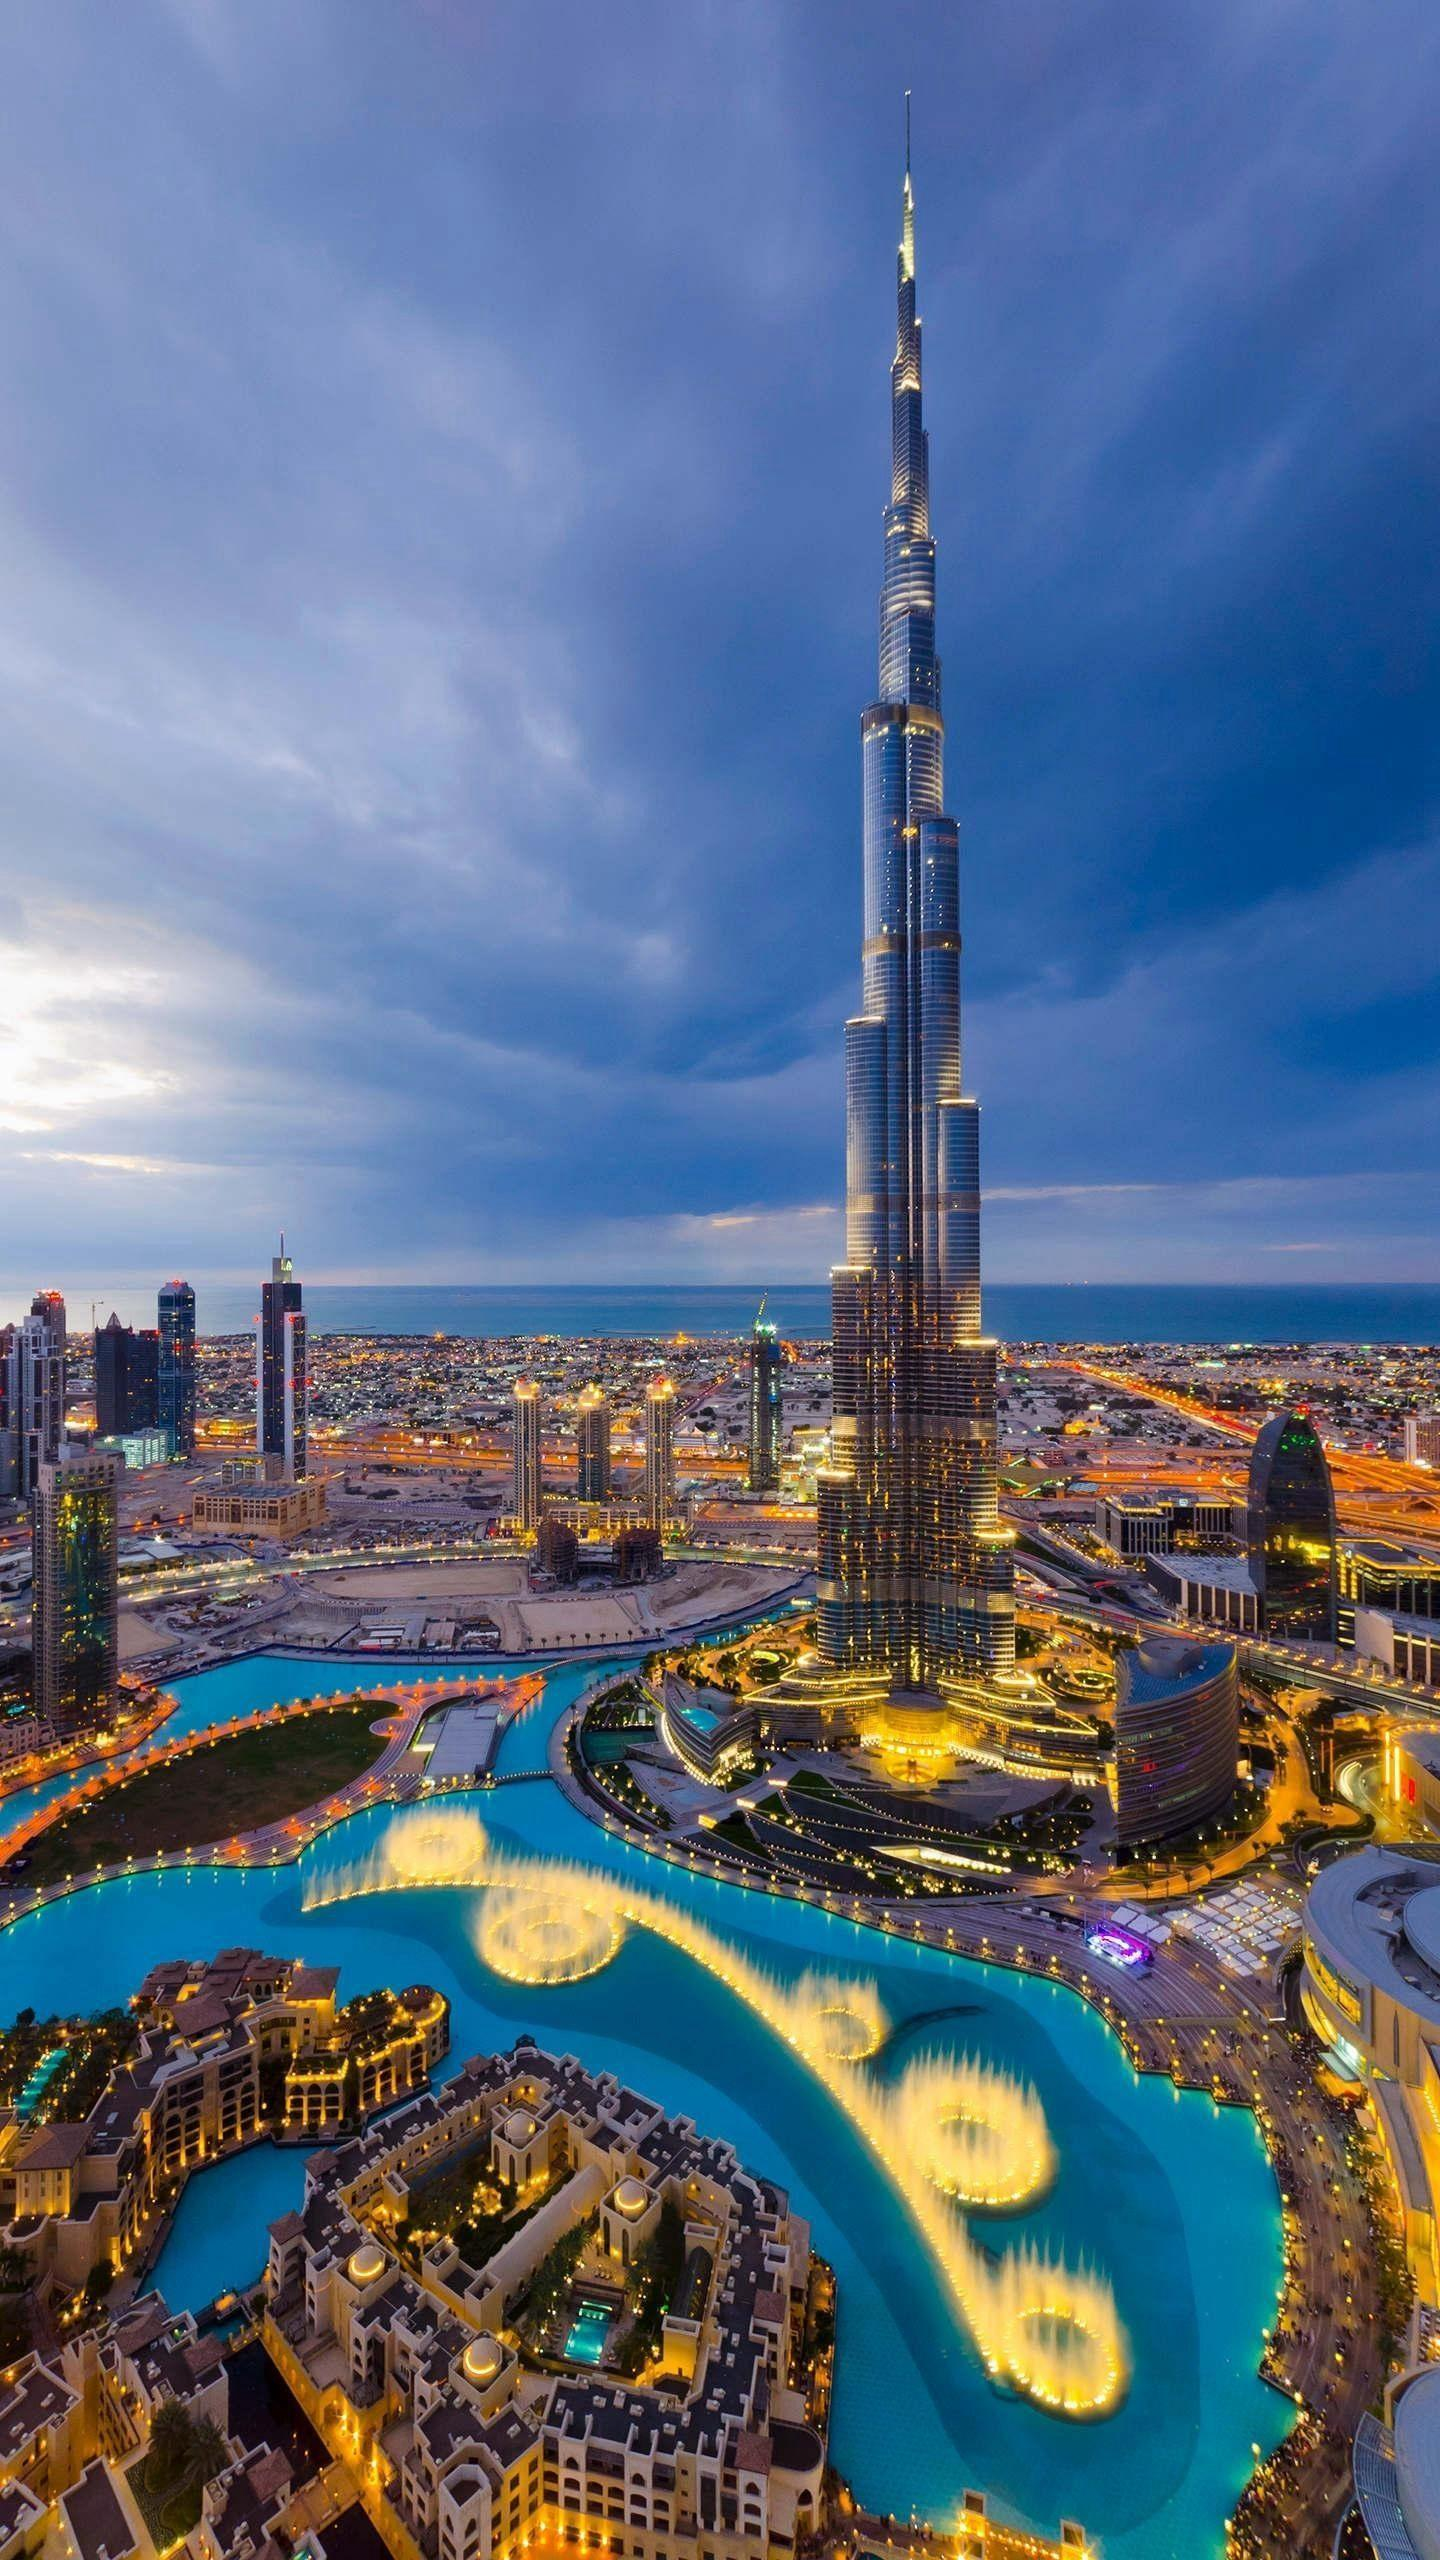 Dubai, Dubai is the economic and financial center of the Middle East and was named the ninth in the world's first-tier cities in 2018.